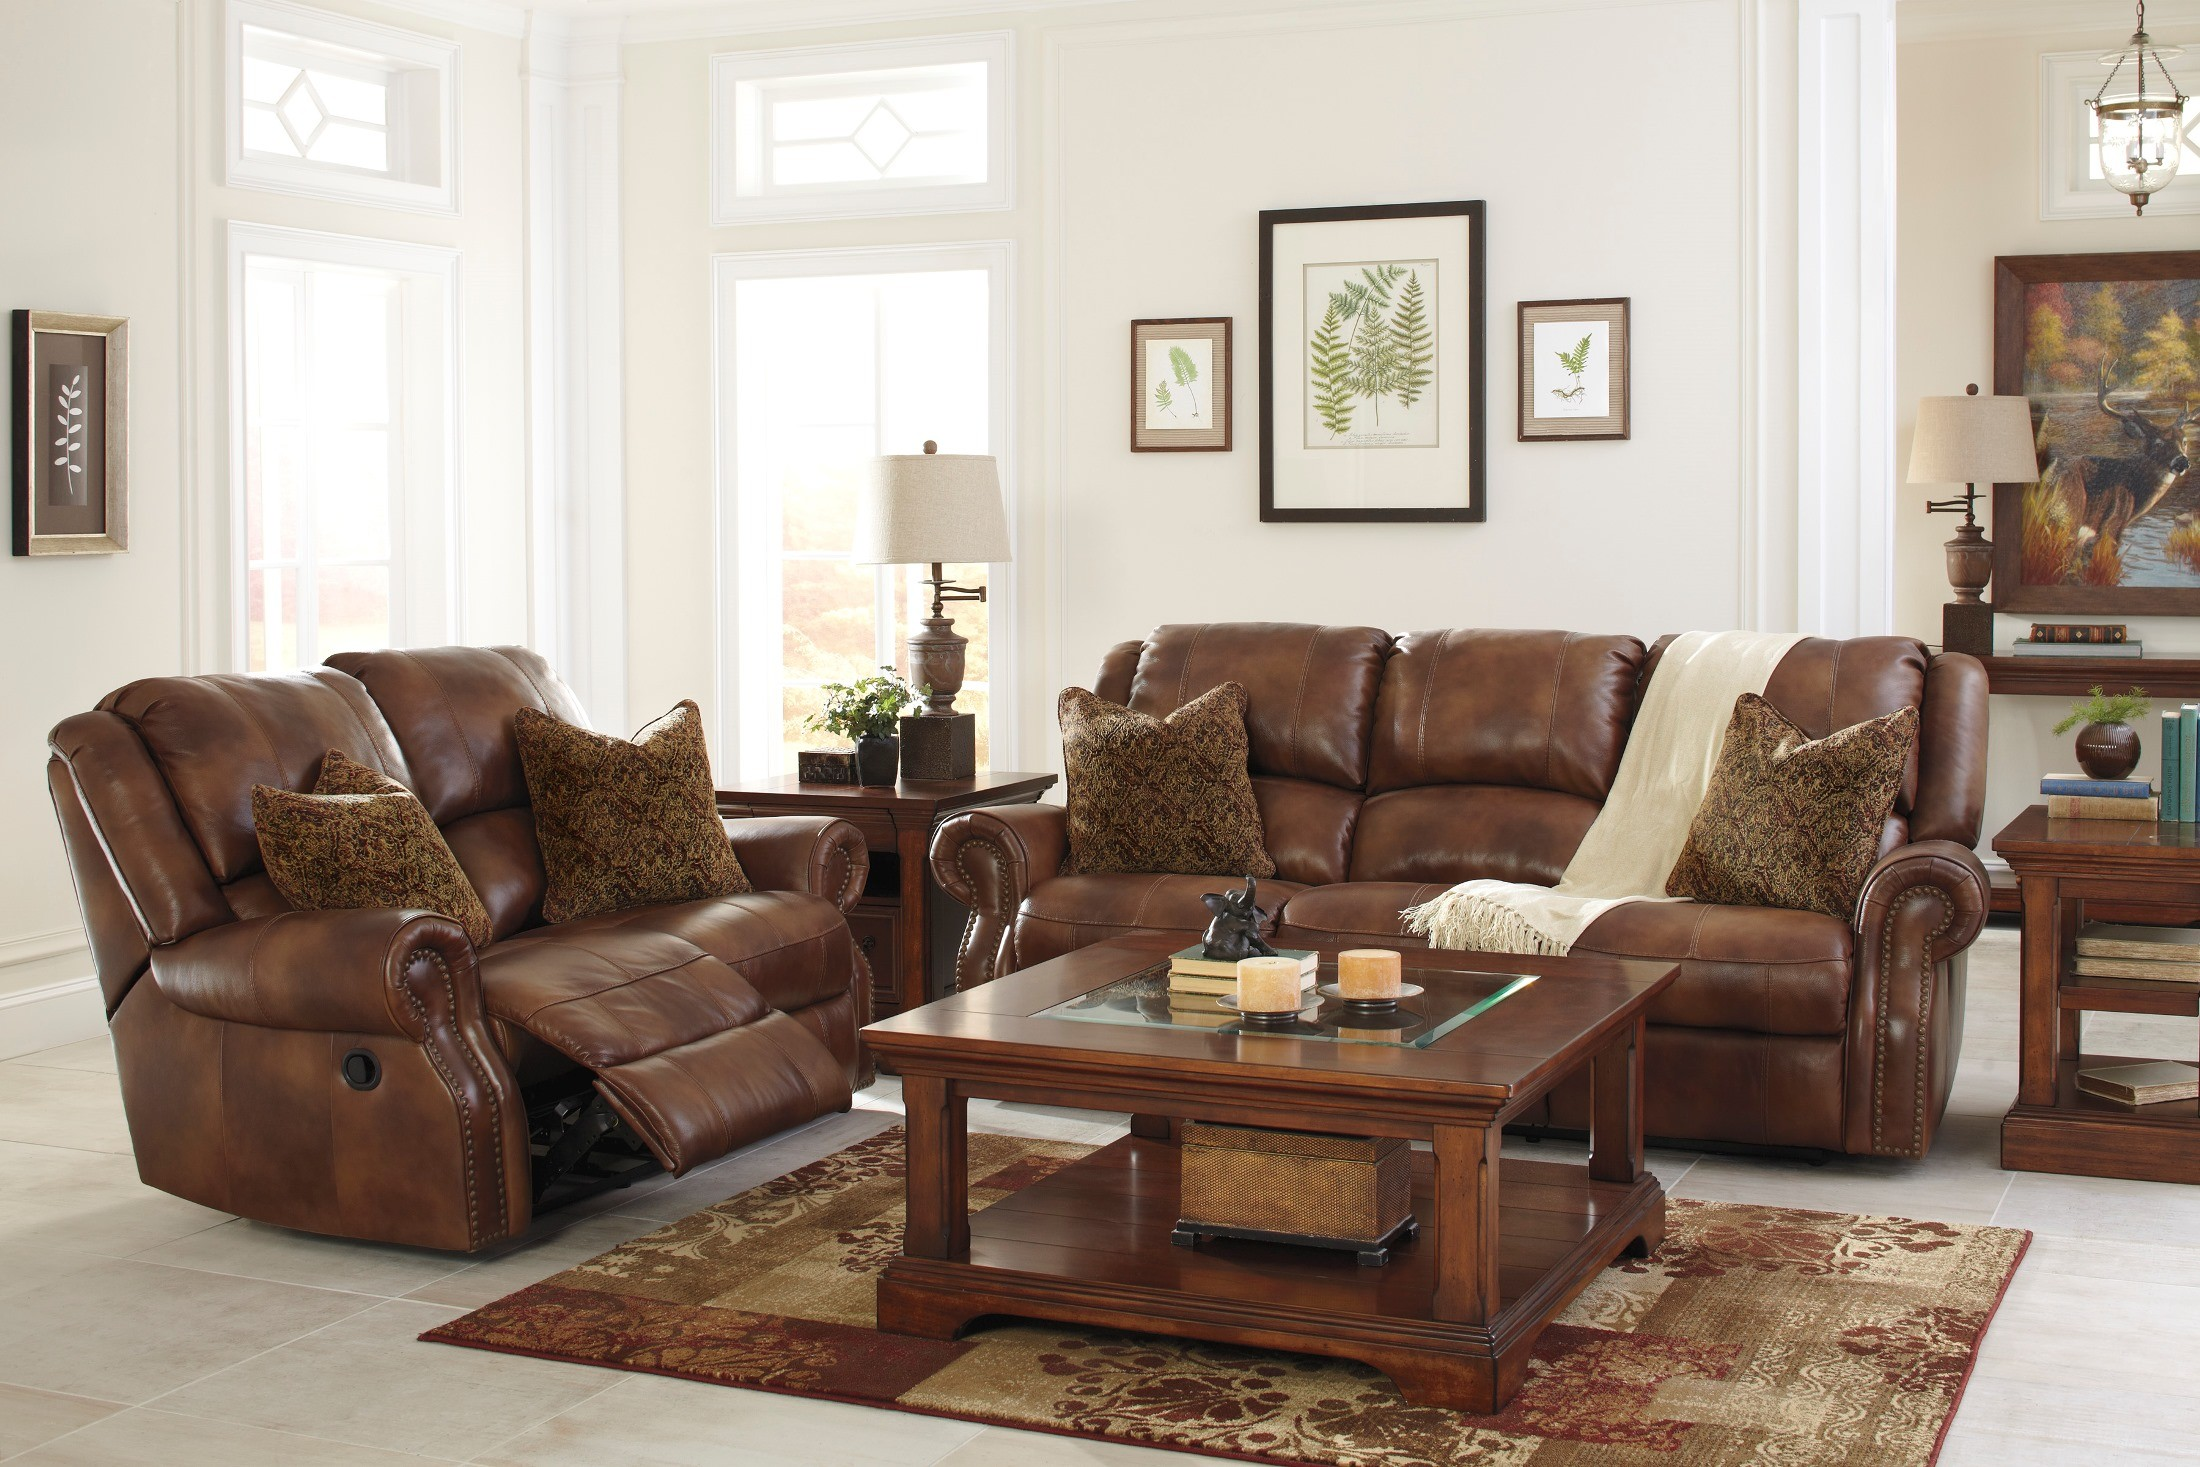 Walworth auburn power reclining living room set from for Living room sets